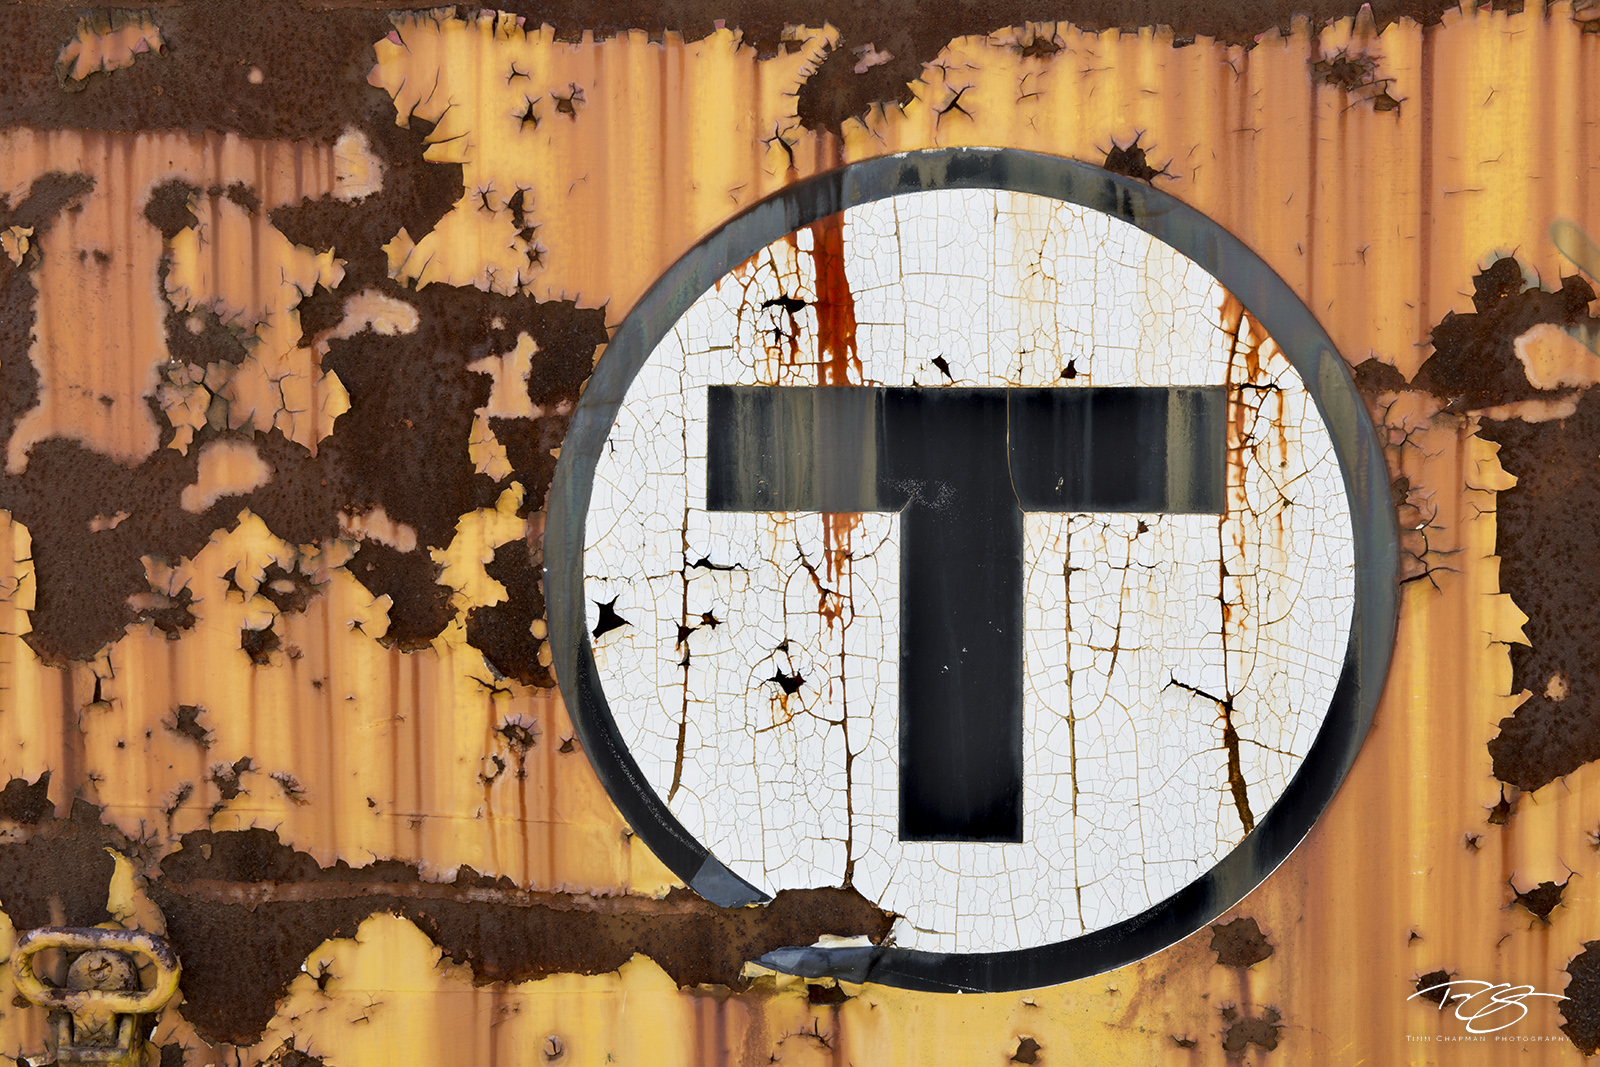 abandoned, trolley car, steetcar, circle T, Massachusetts Bay Transportation Authority, mbta, logo, rust, train, orange, black, white, rusting, peeeling paint, abstract, photo